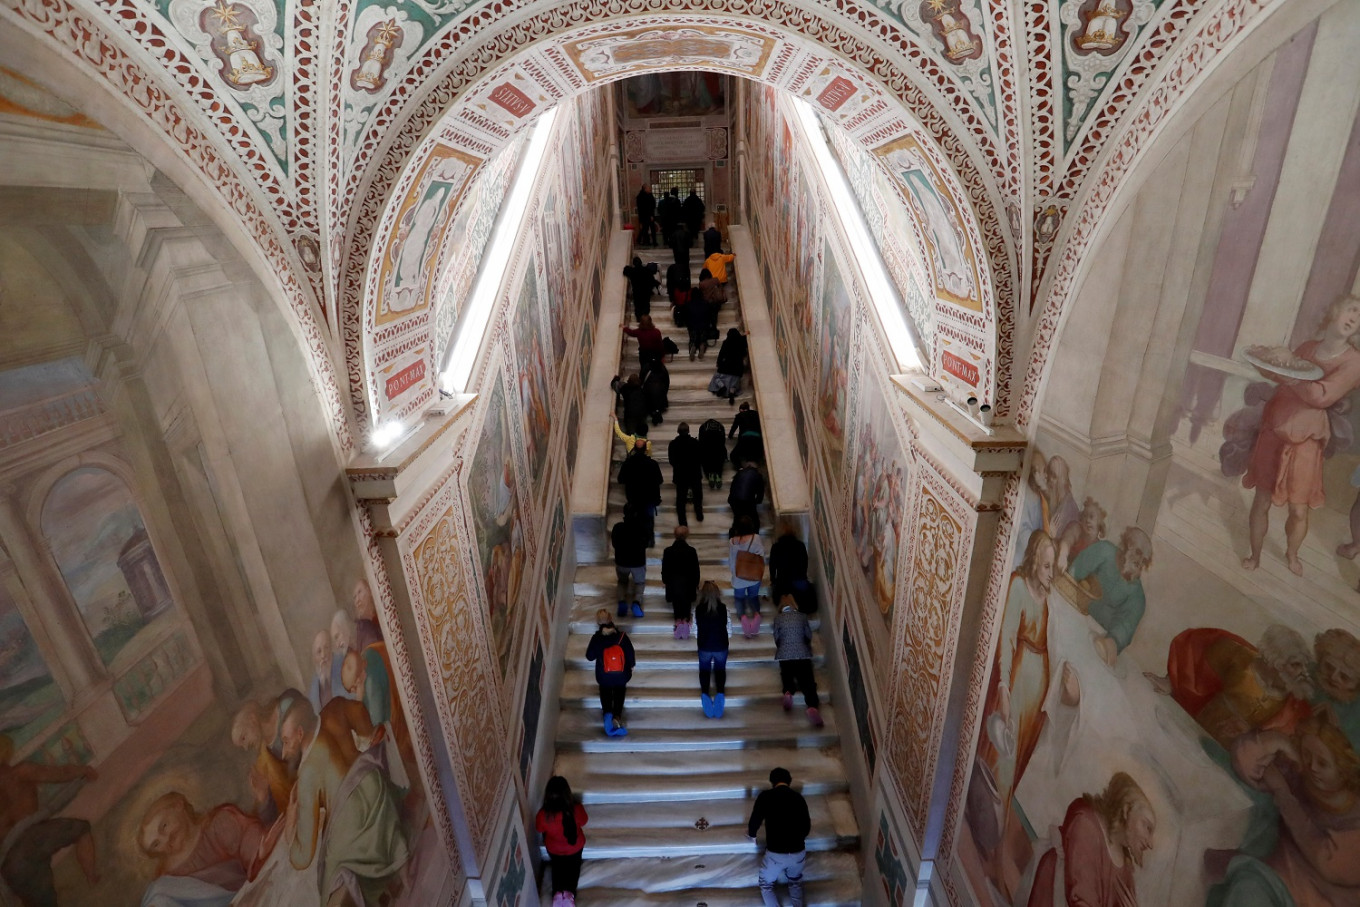 Rome's 'Holy Stairs' bared for first time in 300 years